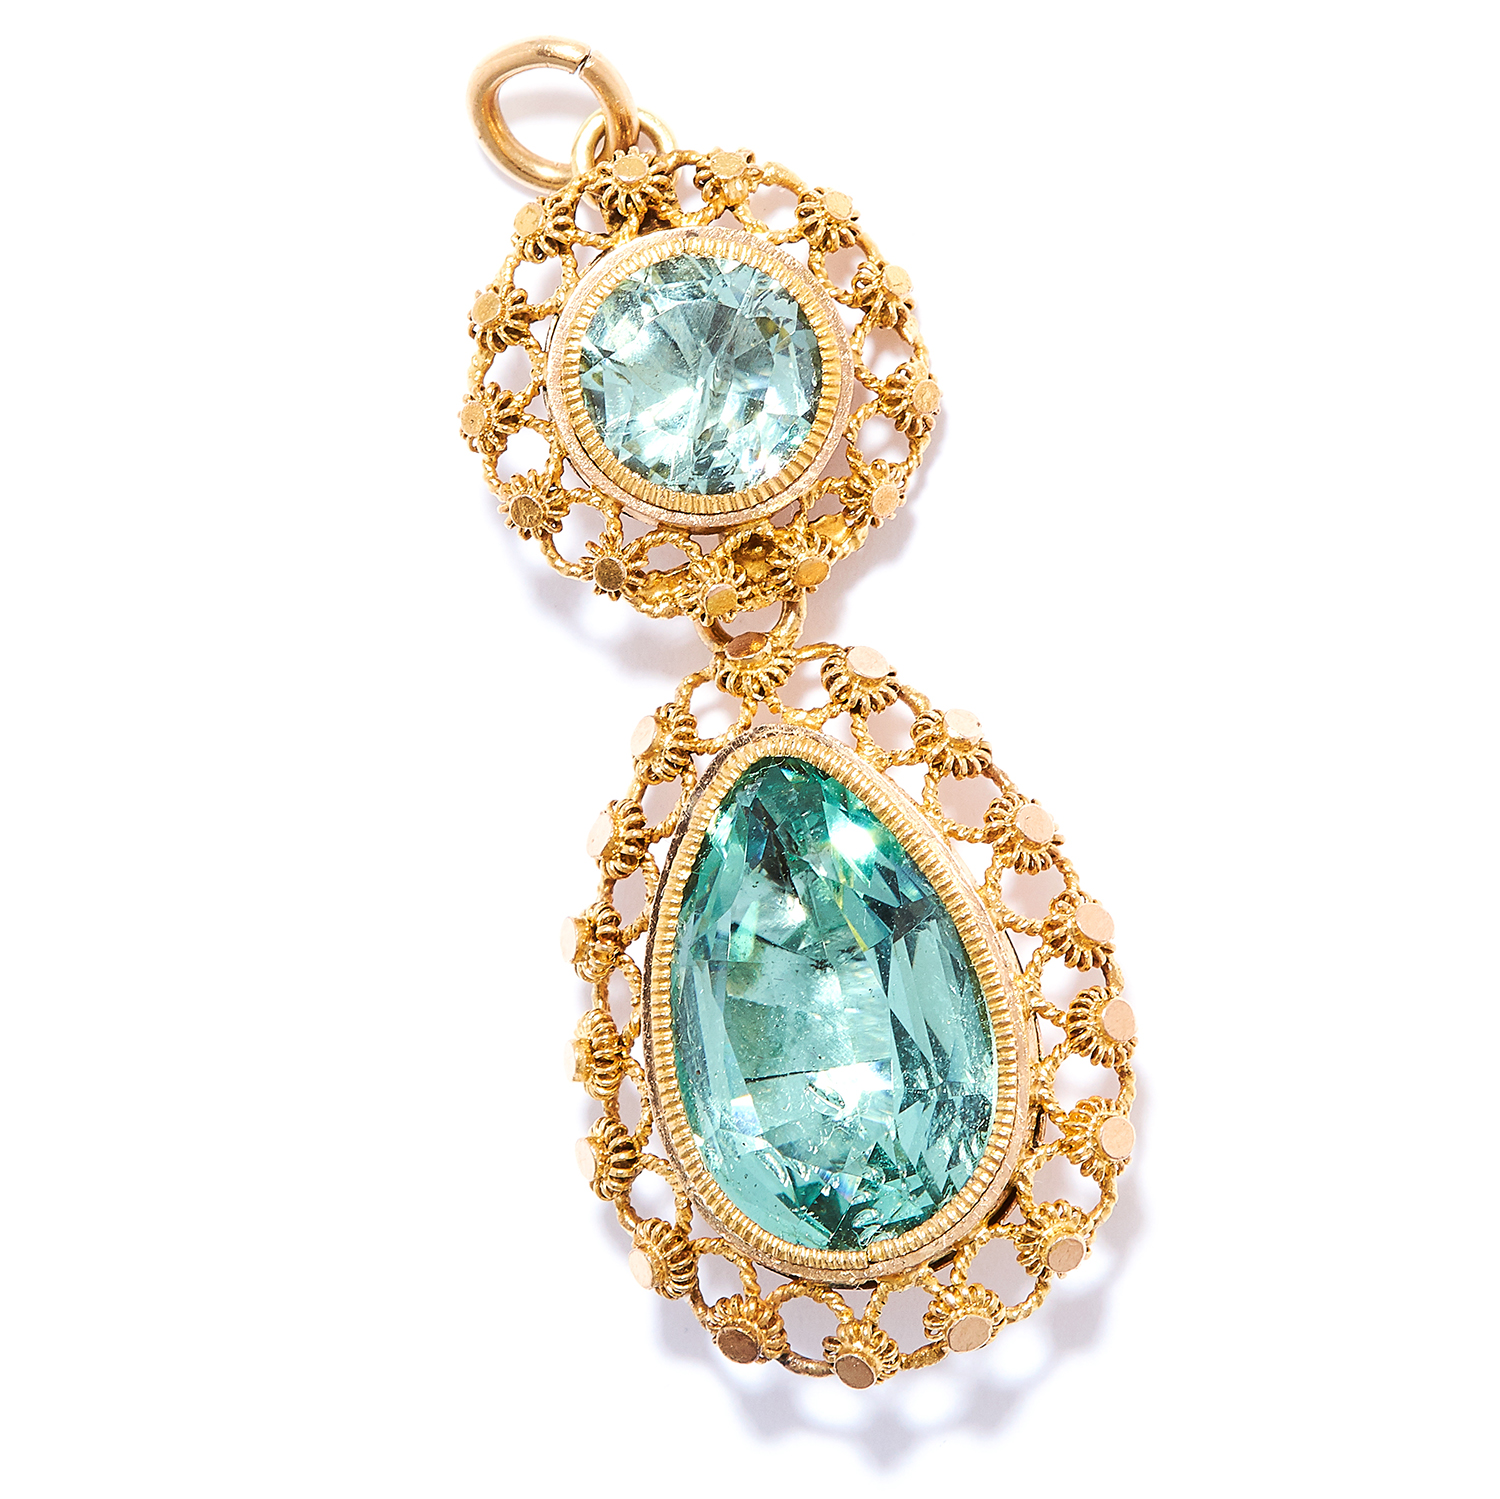 ANTIQUE 5.35 CARAT AQUAMARINE PENDANT in high carat yellow gold, comprising of a round and pear